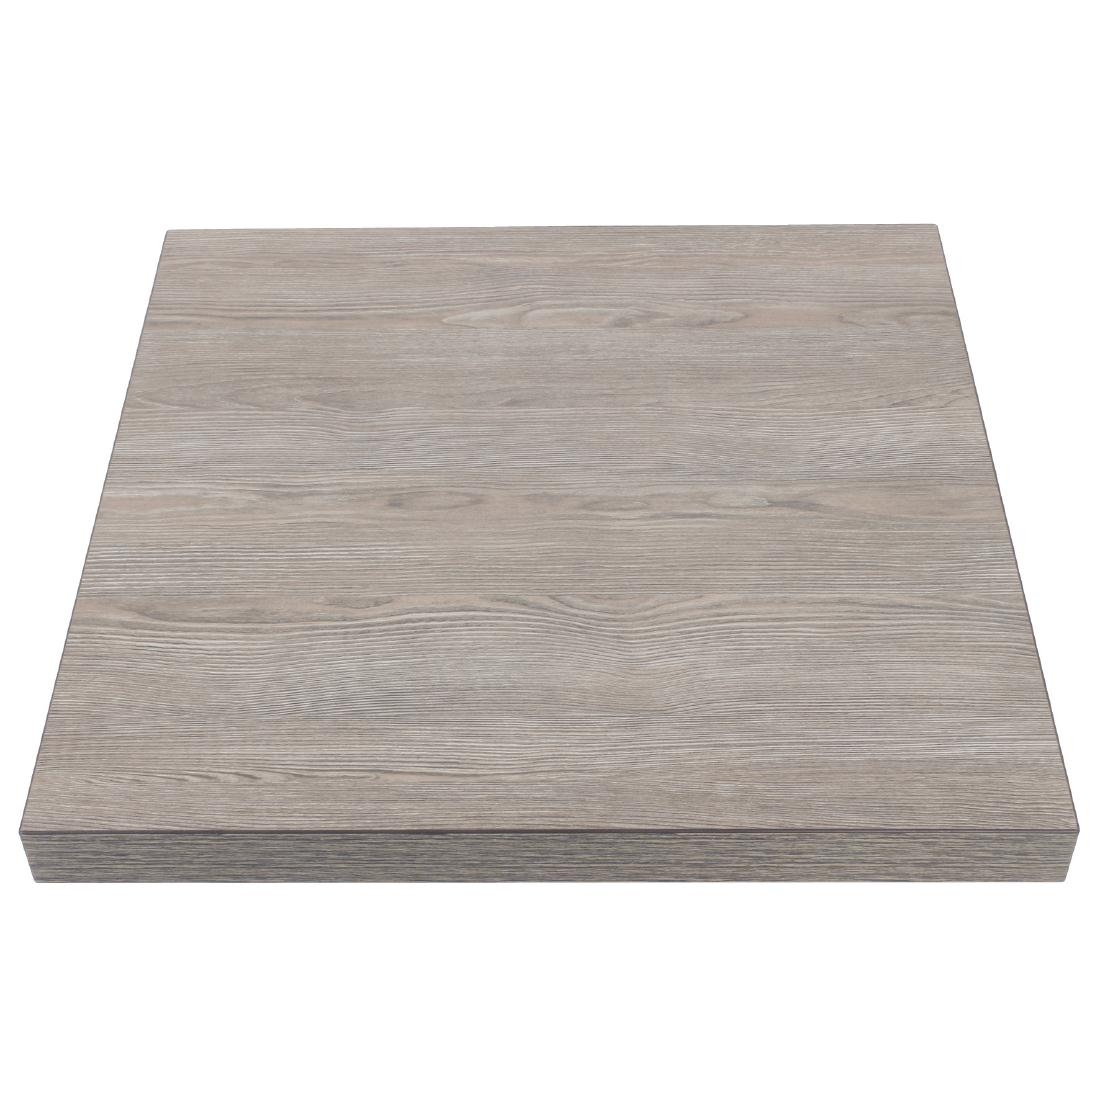 Bolero Pre-drilled Square Table Top Vintage Wood 700mm